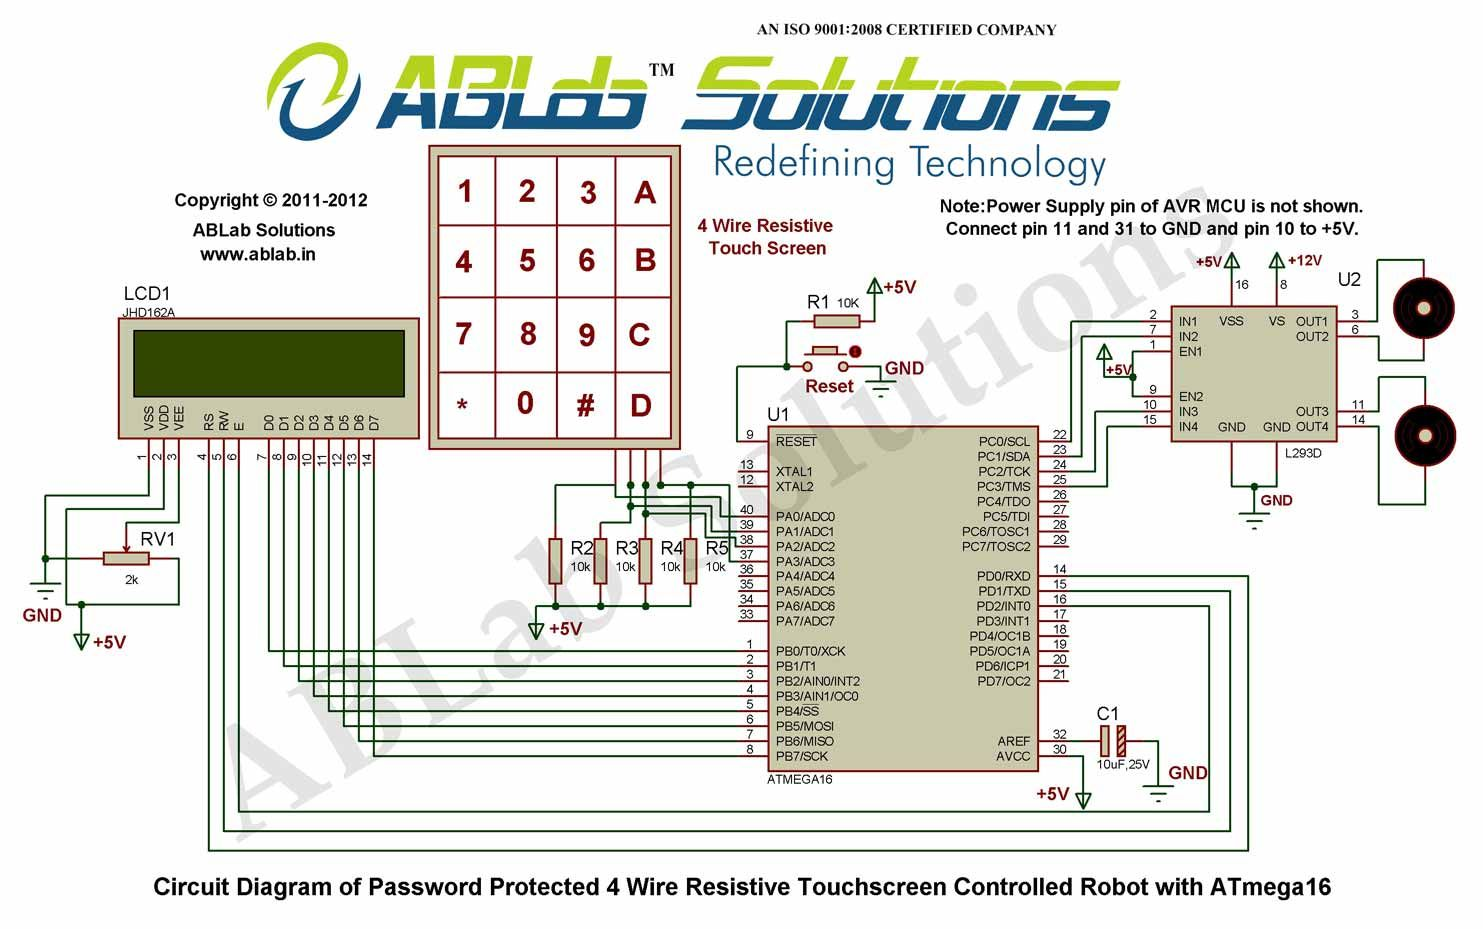 medium resolution of password protected 4 wire resistive touchscreen controlled robot touch screen circuit diagram